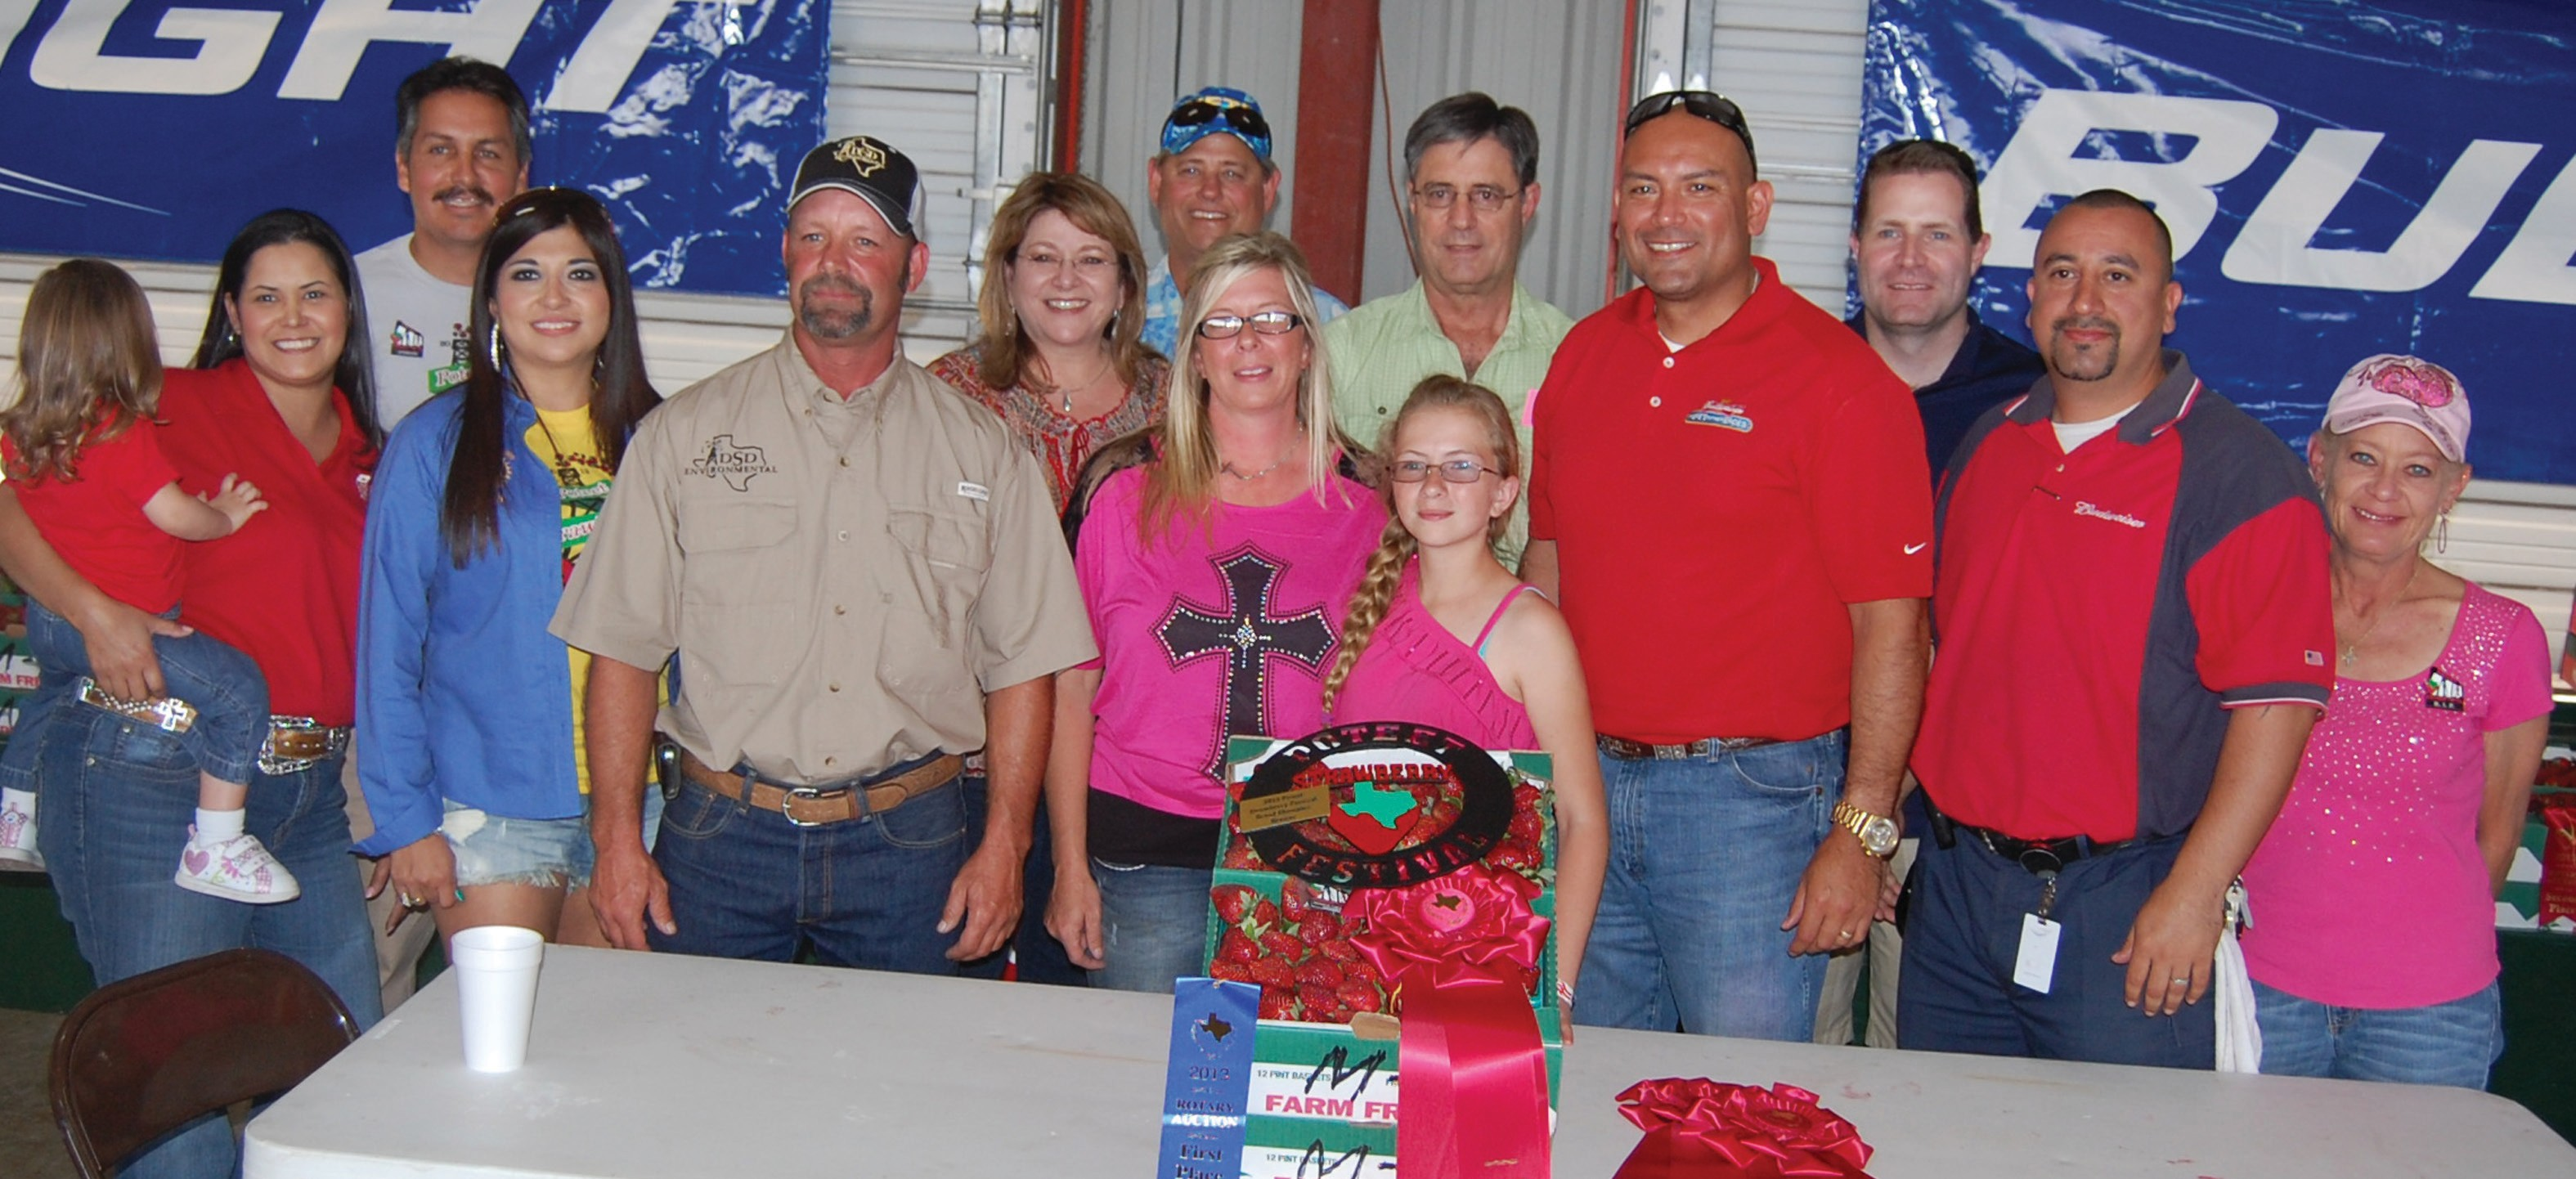 Jessica Cochrane grew this year's Reserve Grand Champion berries at the auction on Saturday. She is joined by the bidders, left to right: Ginnie Otto holding Mariana (Security Service Federal Credit Union, Louis Ramos (Poteet Rotary Club and Ramos Tire & Automotive Service), Jackie Brown (Security State Bank), Jimmy Howe (DSD Environmental), Nellie Delgado (AEP Texas), Pat Paxson (Pure Party Ice), winning grower Jessica Cochrane with daughter Toccoa Cochrane, Eldon Tuttle (Tuttle Motor Co.), Ben Garcia (Bud Light-Silver Eagle Distribution), Cory Oliver (H-E-B), Jason Olvera (Bud Light-Silver Eagle Distributors) and Dawn Mason (South Texas Que & Brew).